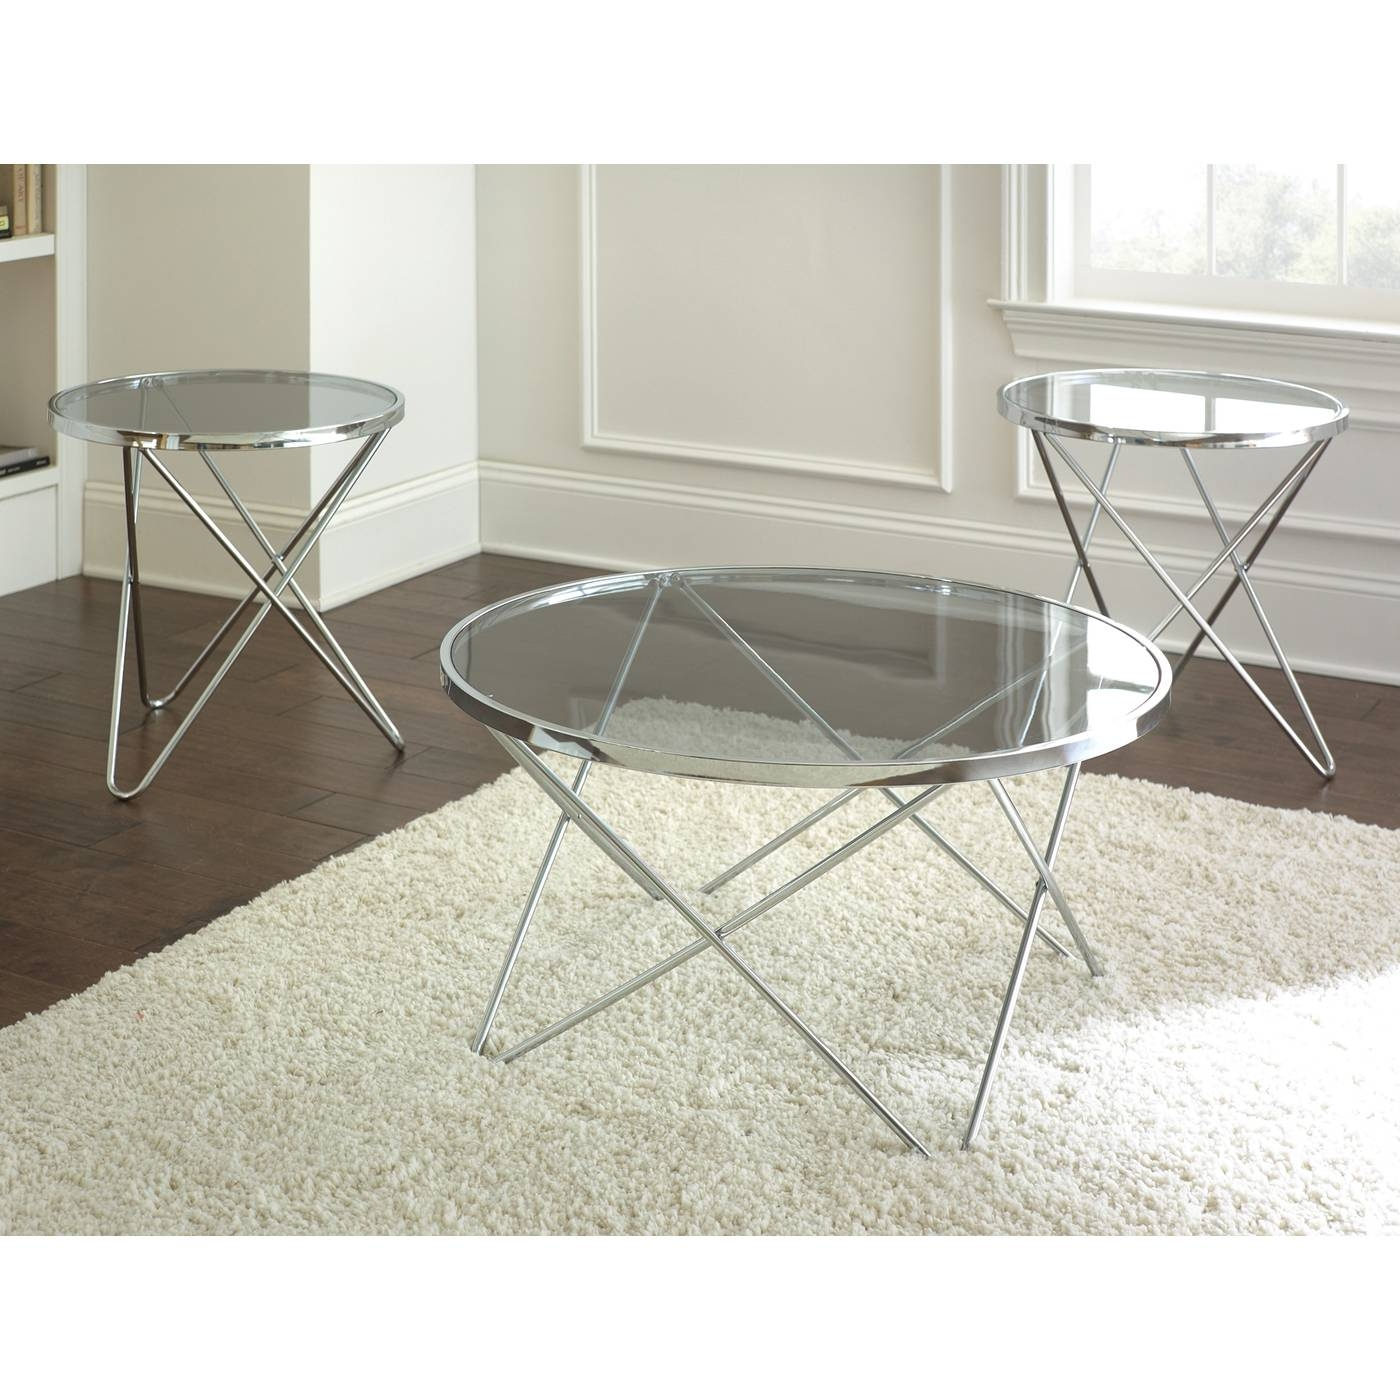 Silver Round Coffee Table – Hammered Silver Round Coffee Table throughout Round Chrome Coffee Tables (Image 28 of 30)